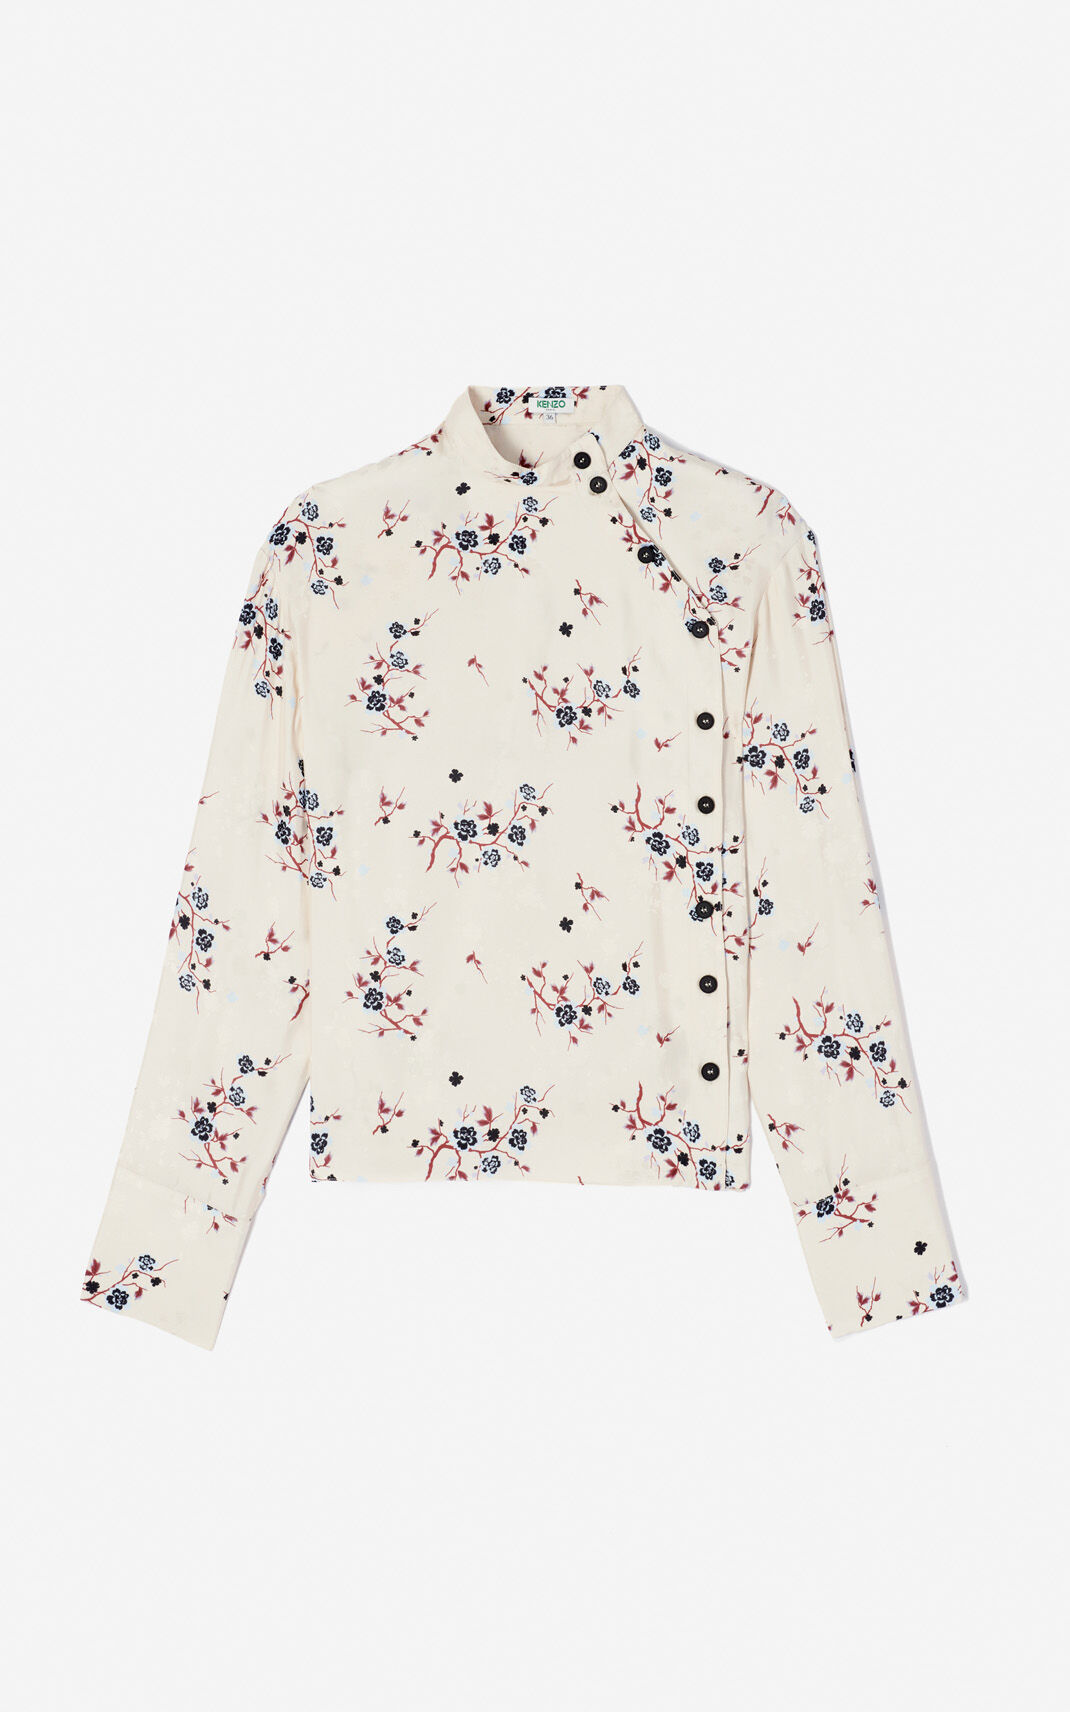 SAND 'Cheongsam Flower' blouse for women KENZO